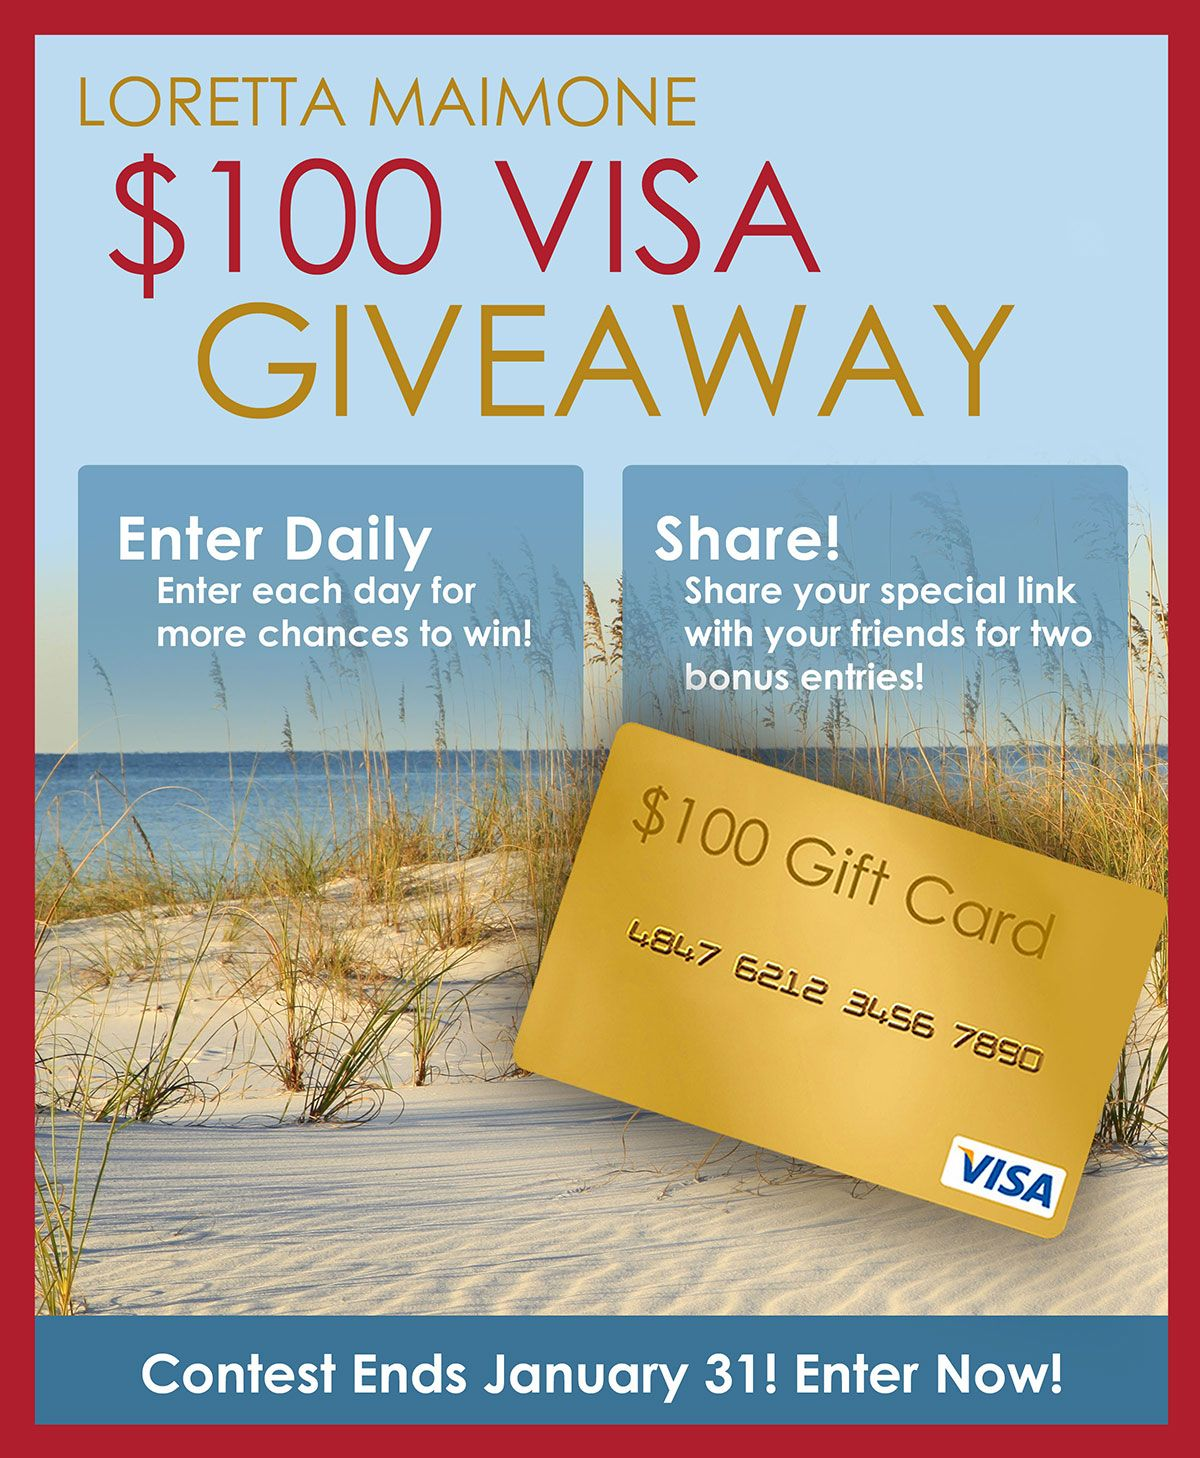 Enter sweepstakes contests giveaways